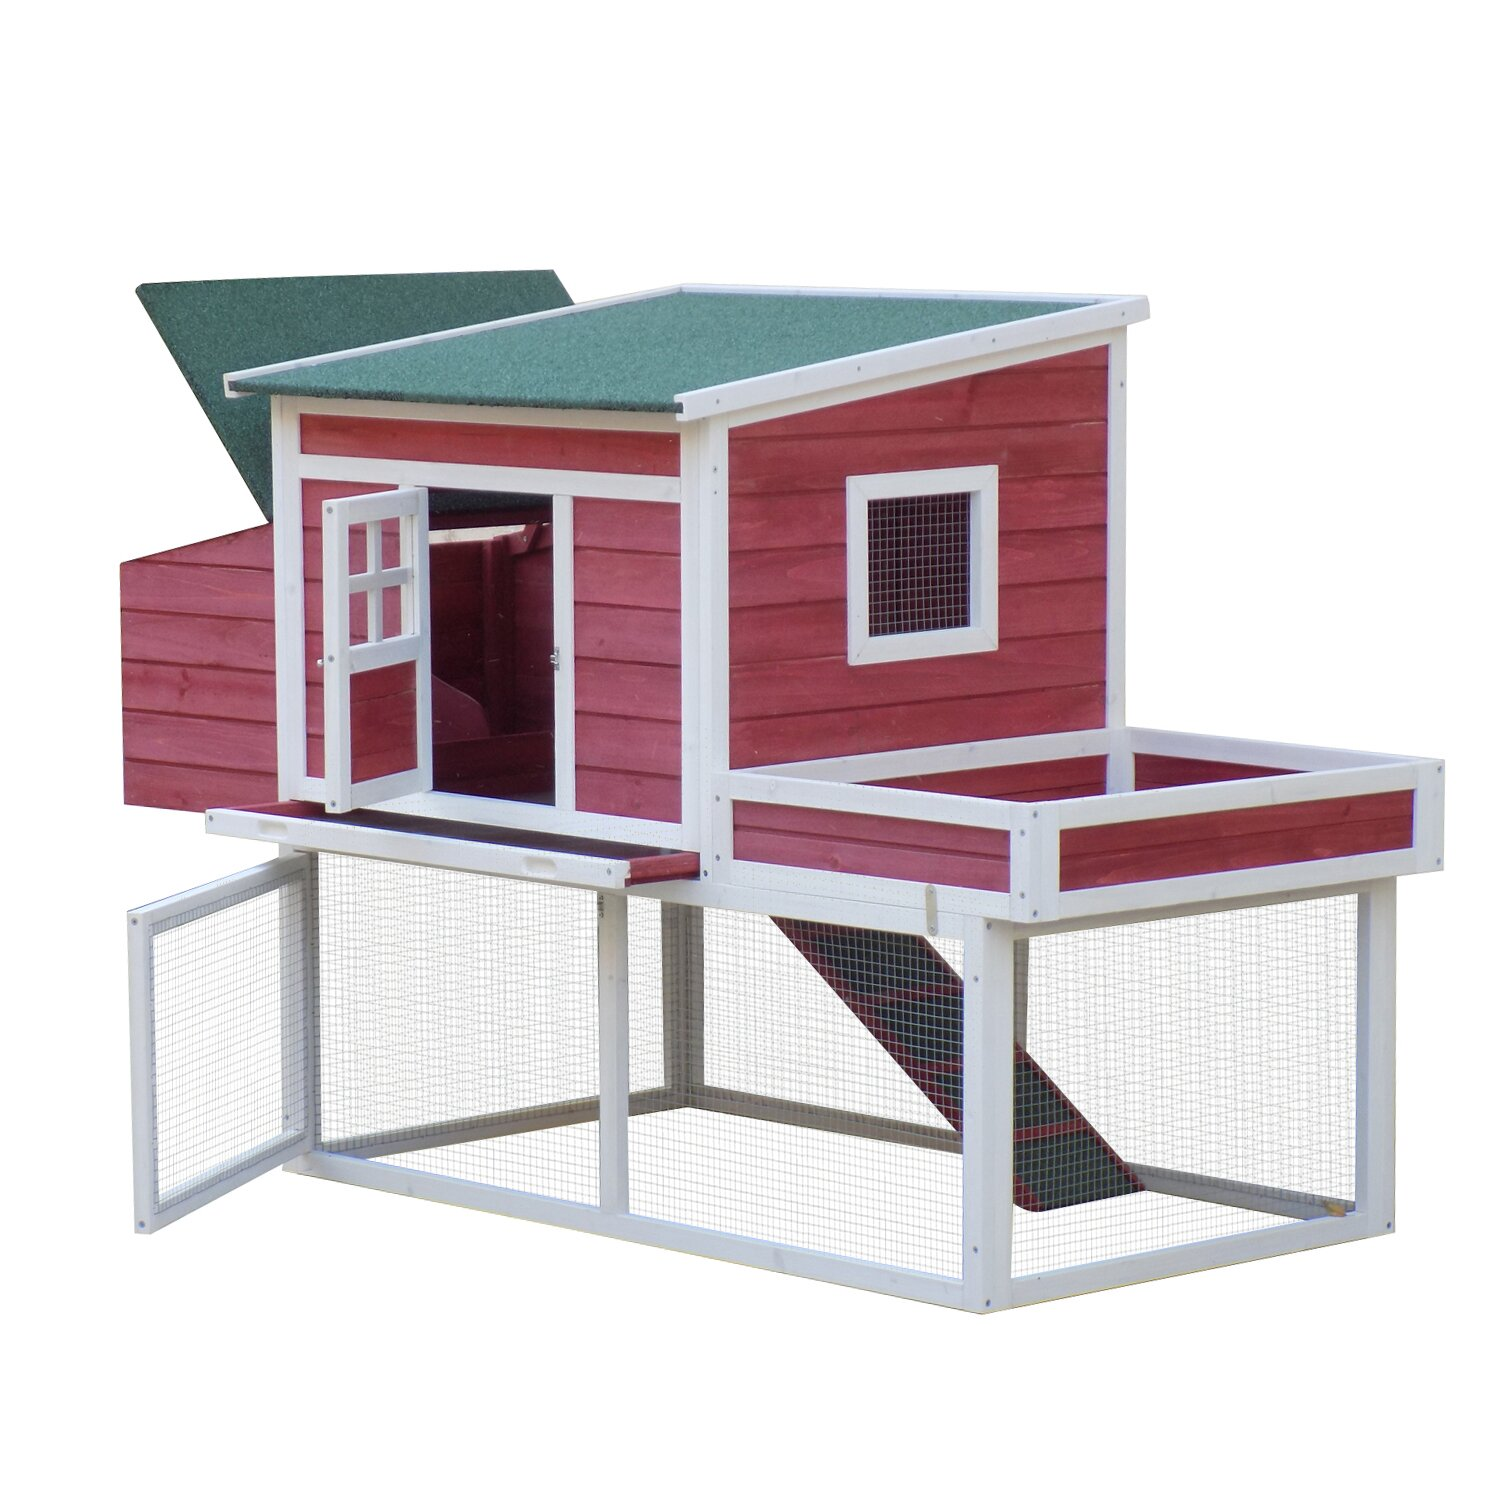 Pawhut farmhouse chicken coop with display top run area for Wooden chicken crate plans